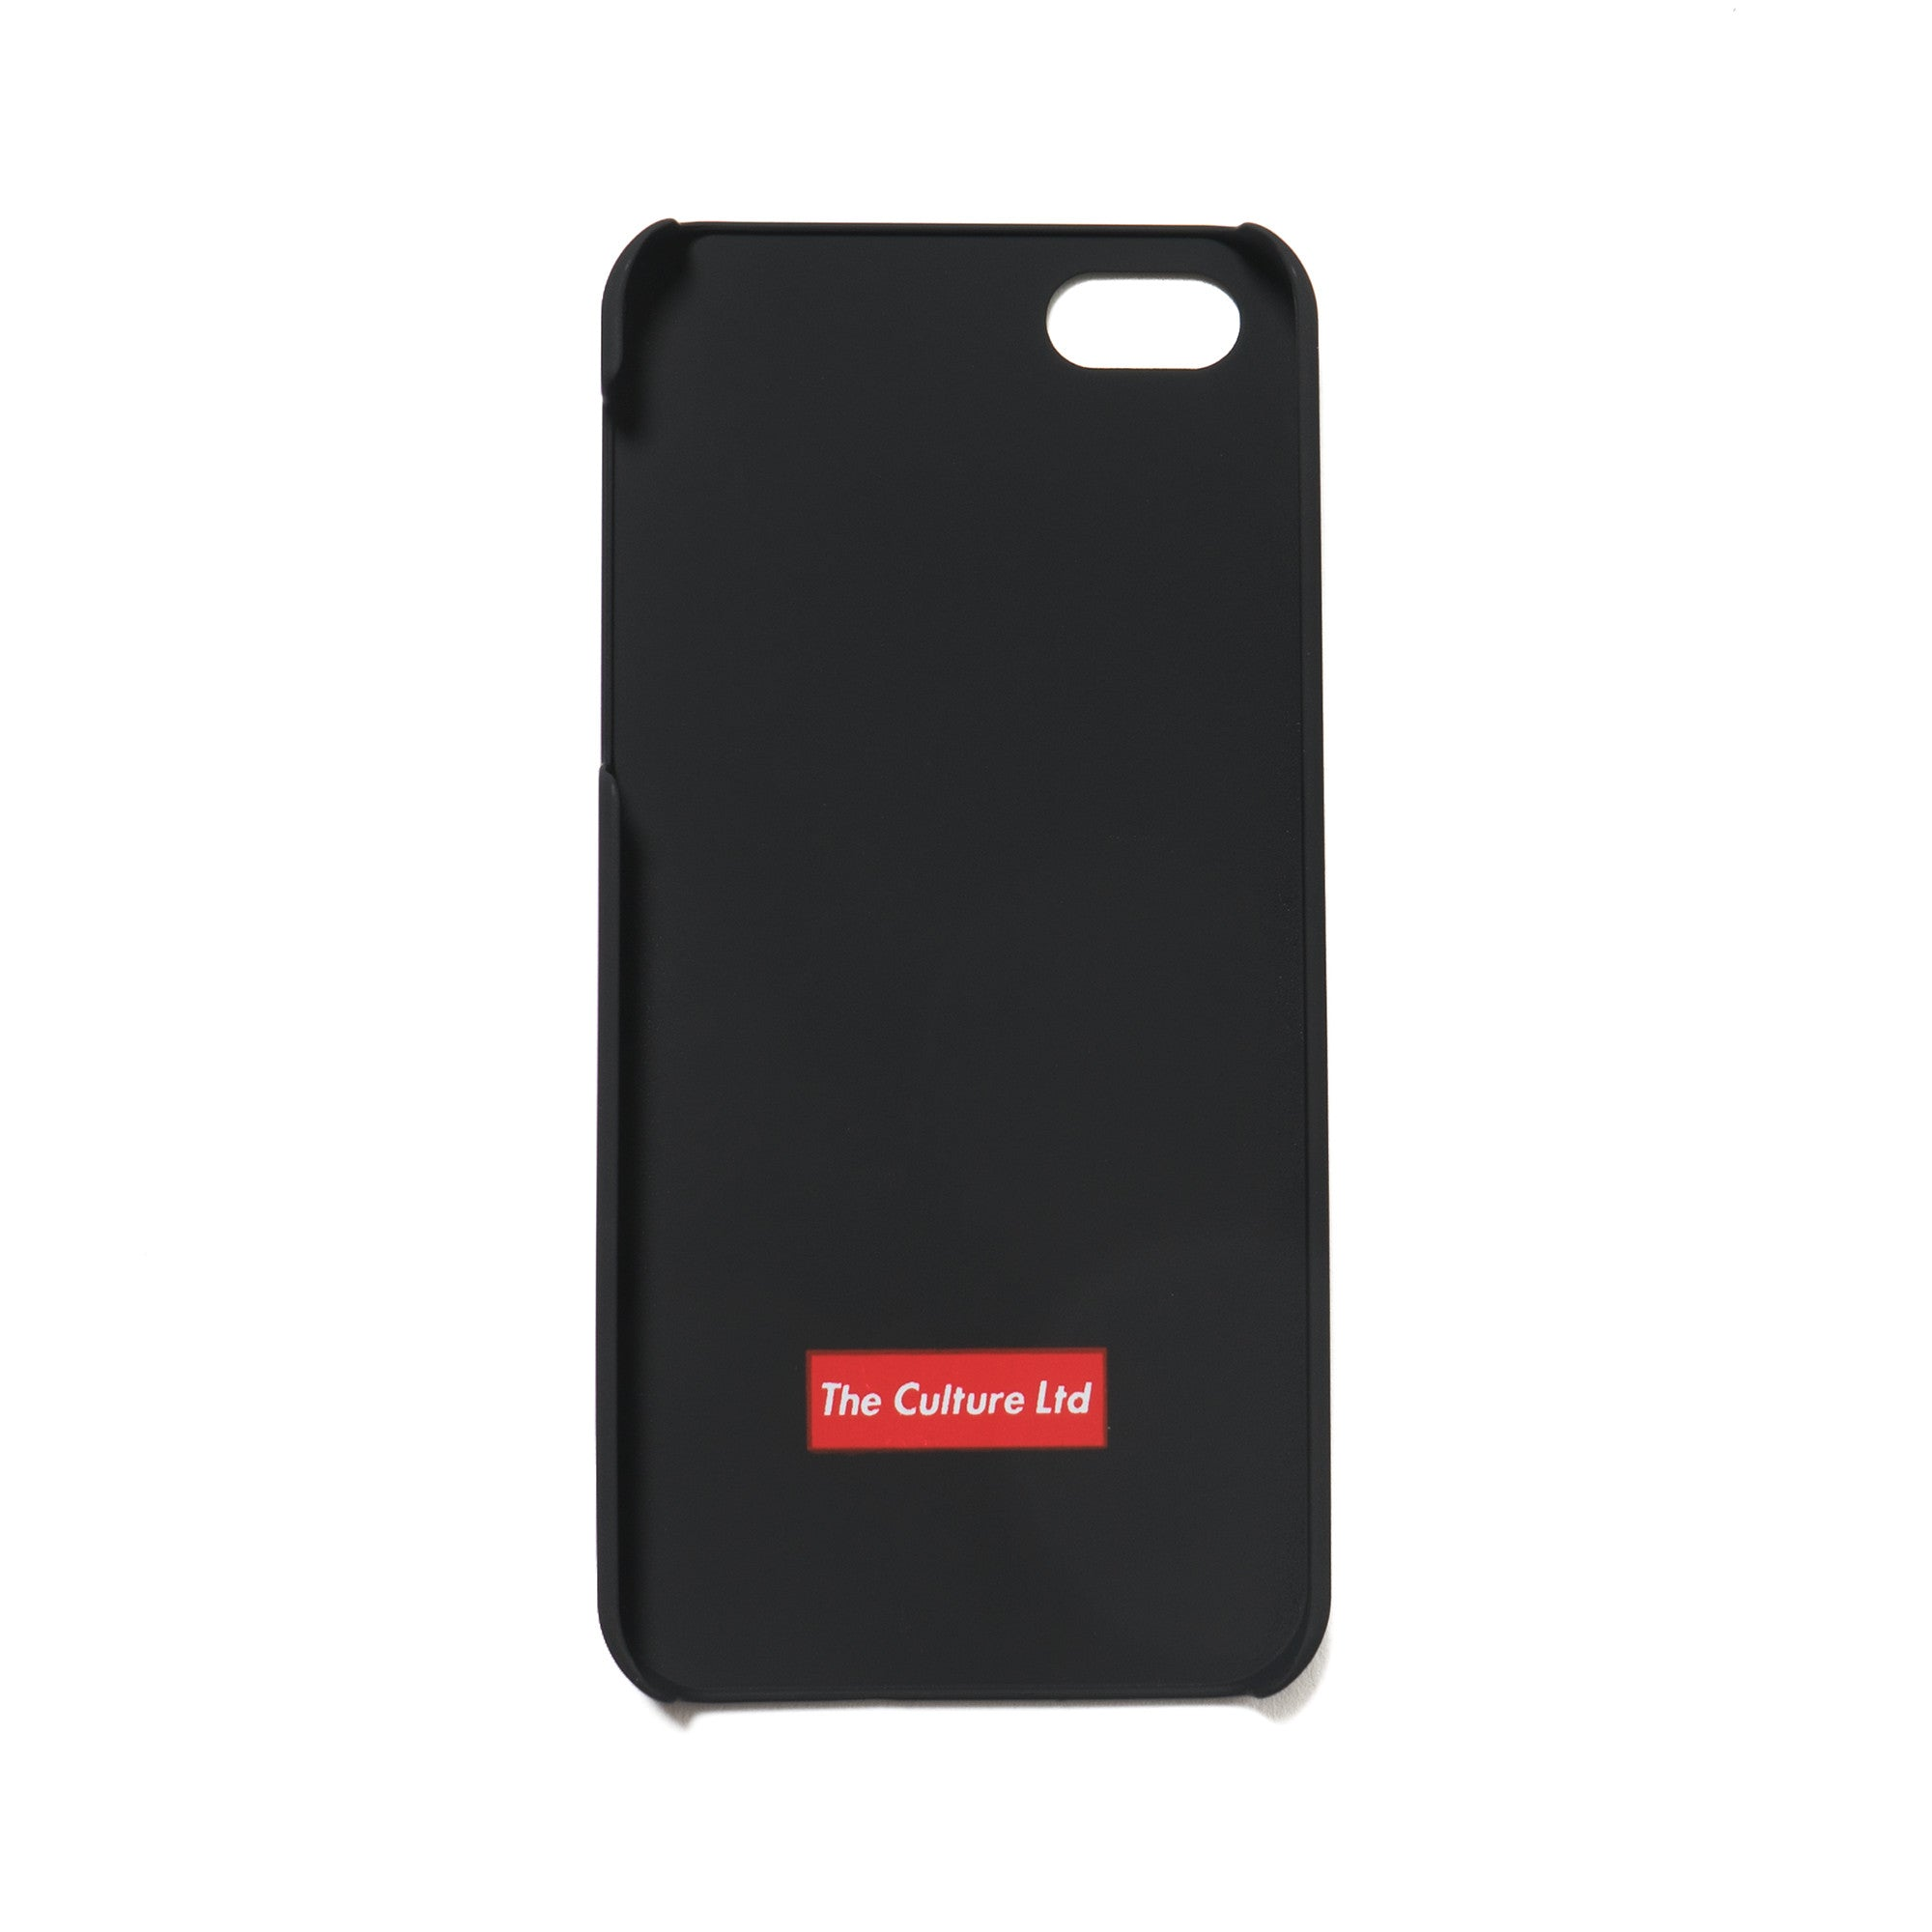 Black Definition iPhone 5 Case